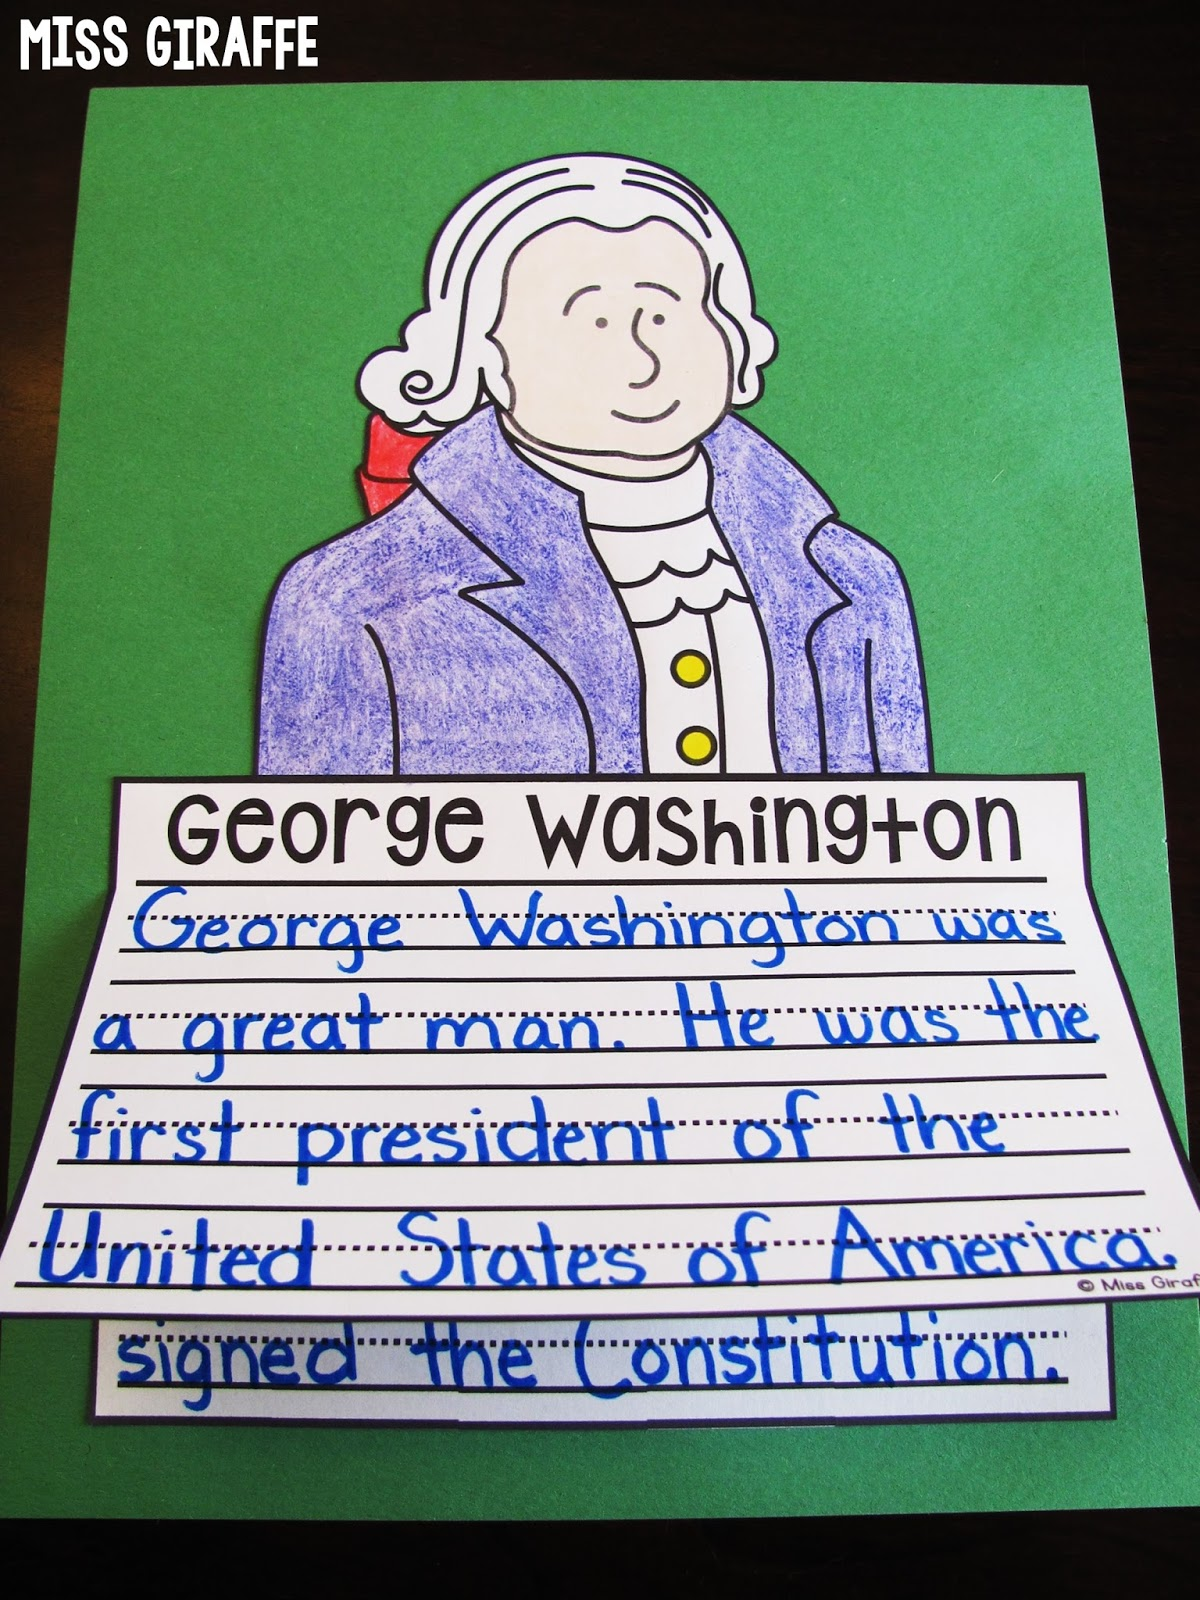 george washington 5 essay George washington: george washington, commander-in-chief of the colonial armies in the american revolution, who was later the first president of the united states.